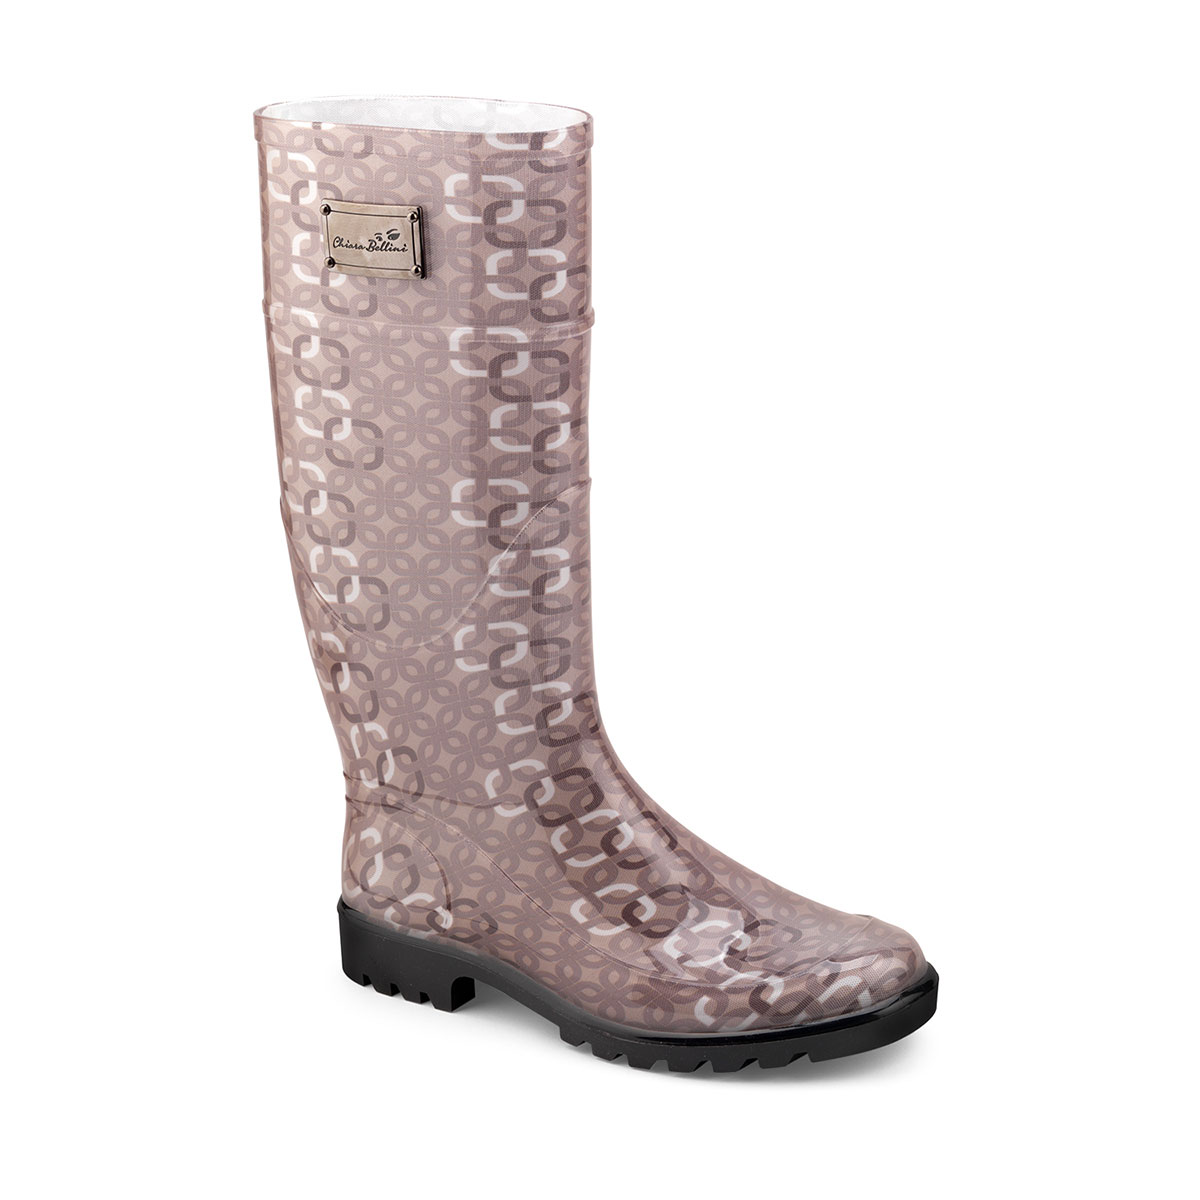 Bright pvc Rainboot with texture pattern